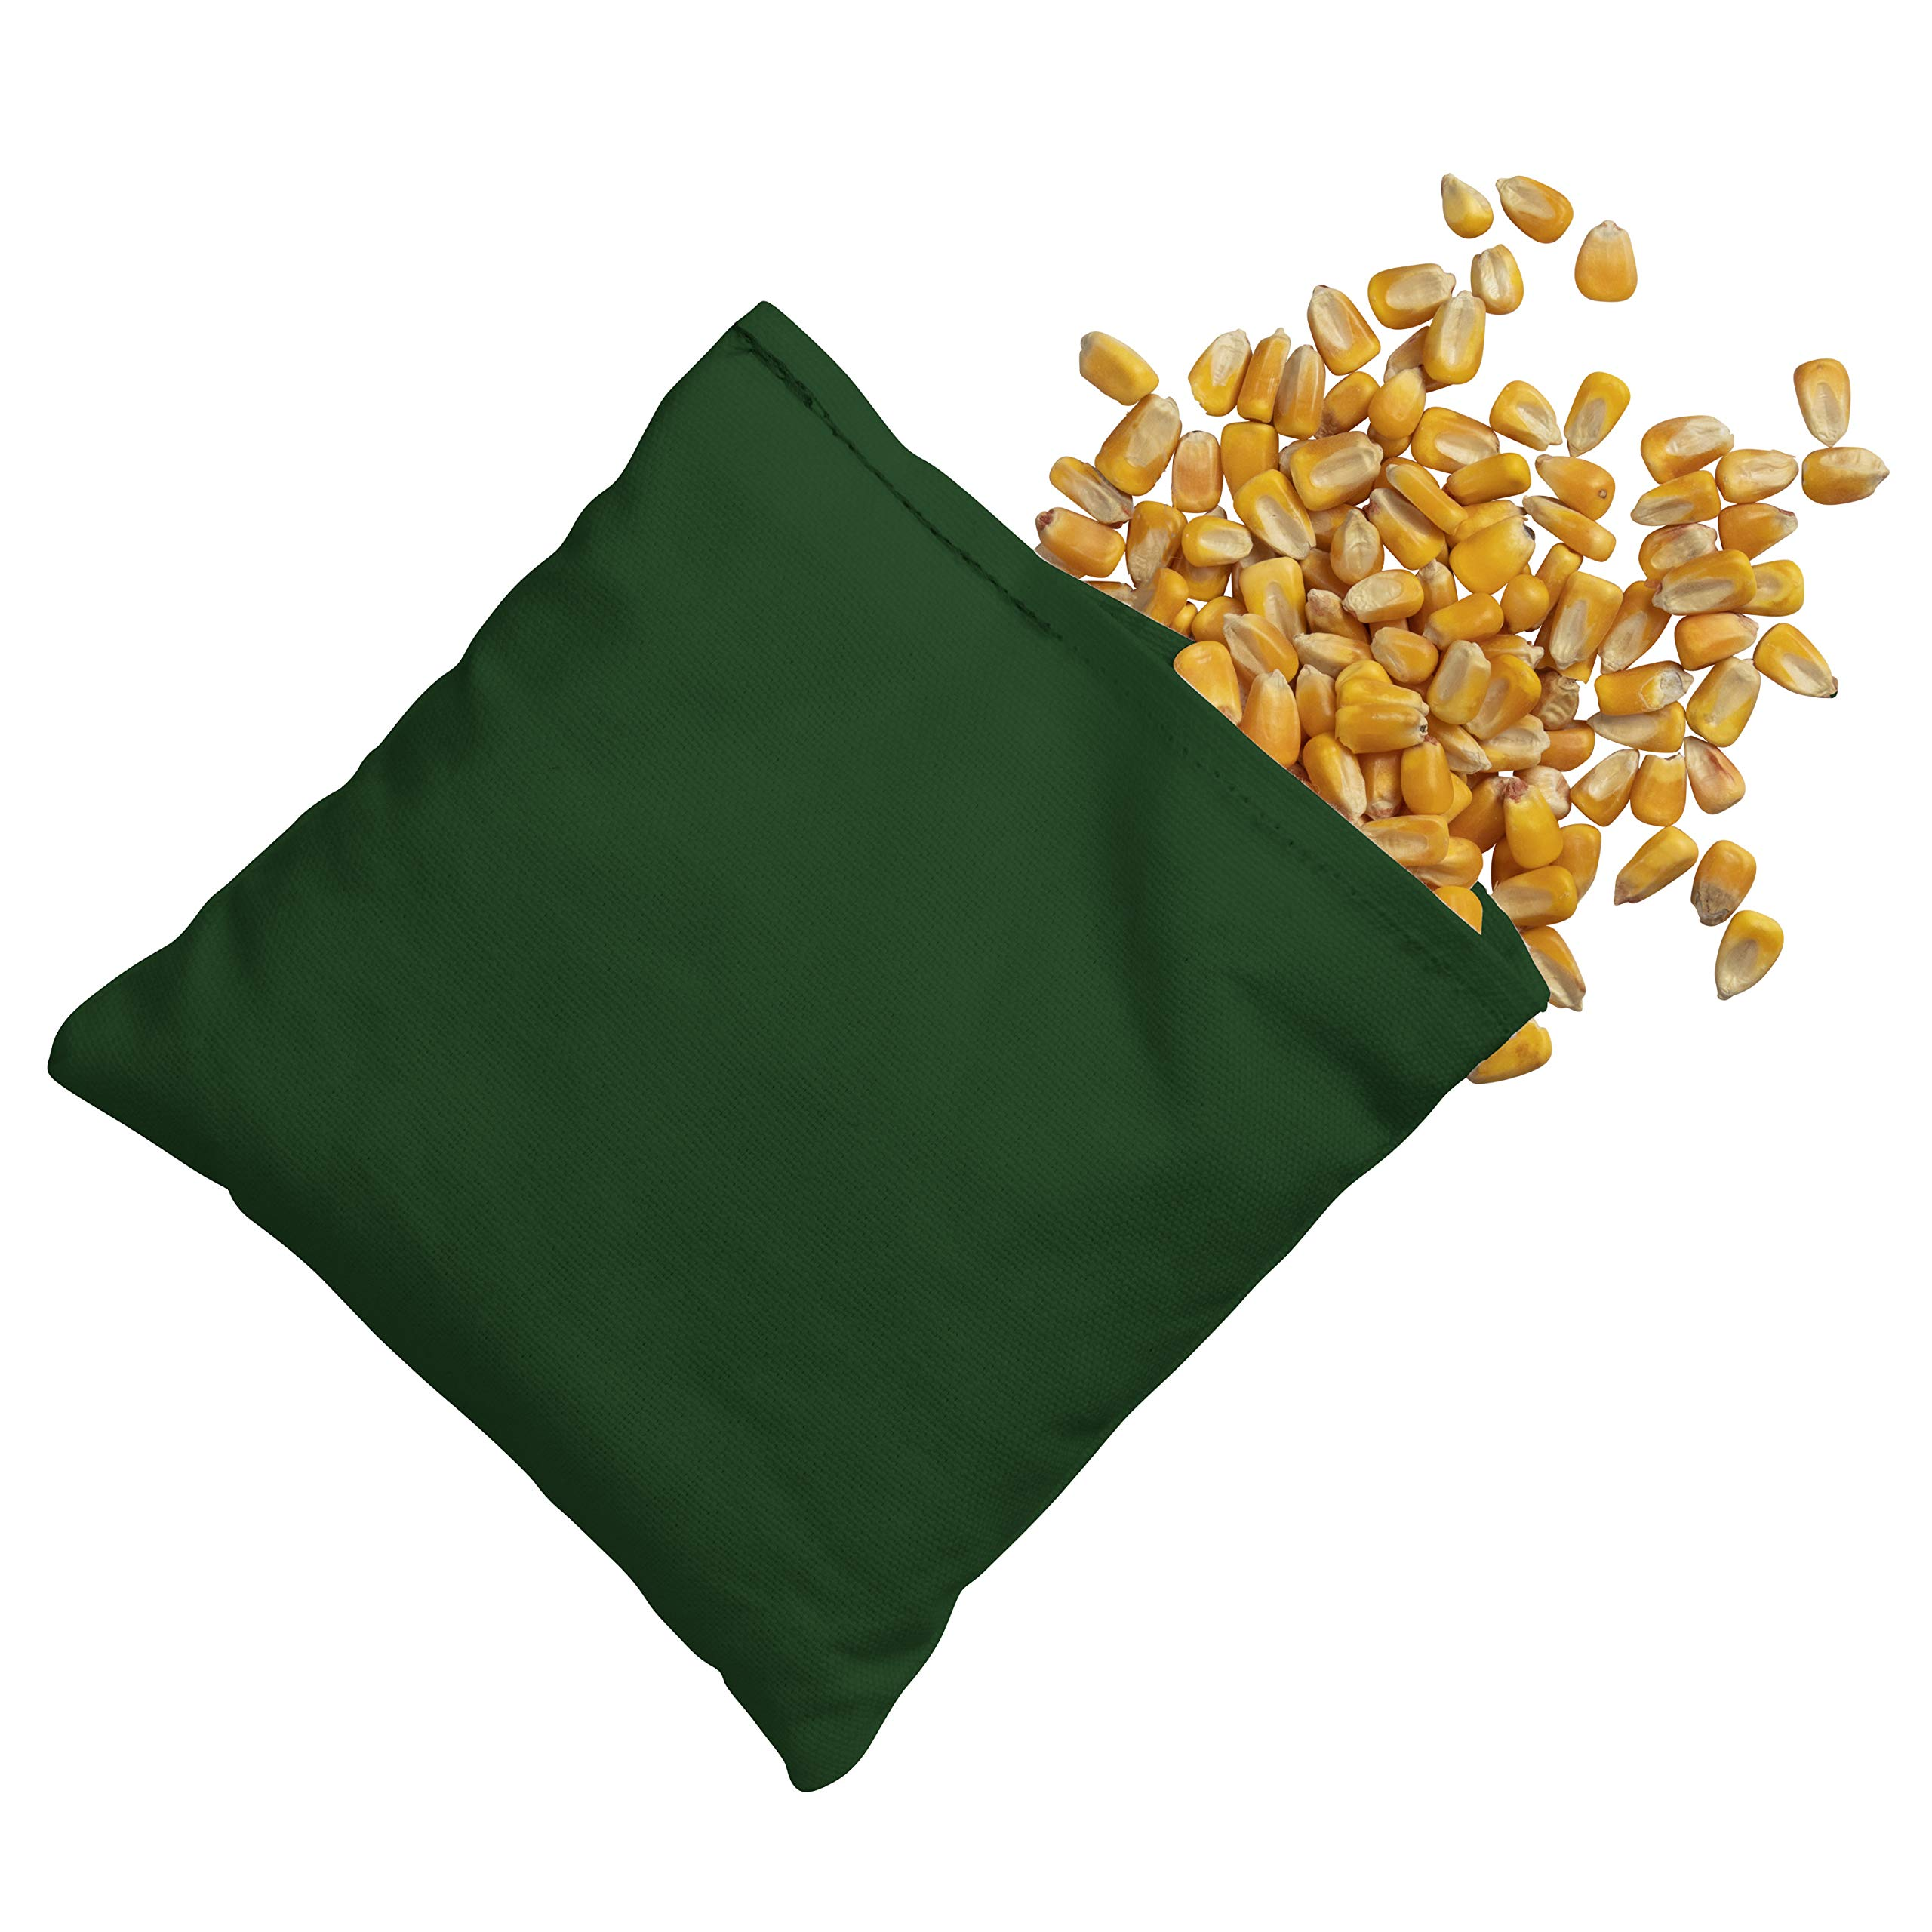 Victory Tailgate 8 Colored Corn Filled Regulation Cornhole Bags with Drawstring Pack (4 Burgundy, 4 Hunter Green) by Victory Tailgate (Image #6)